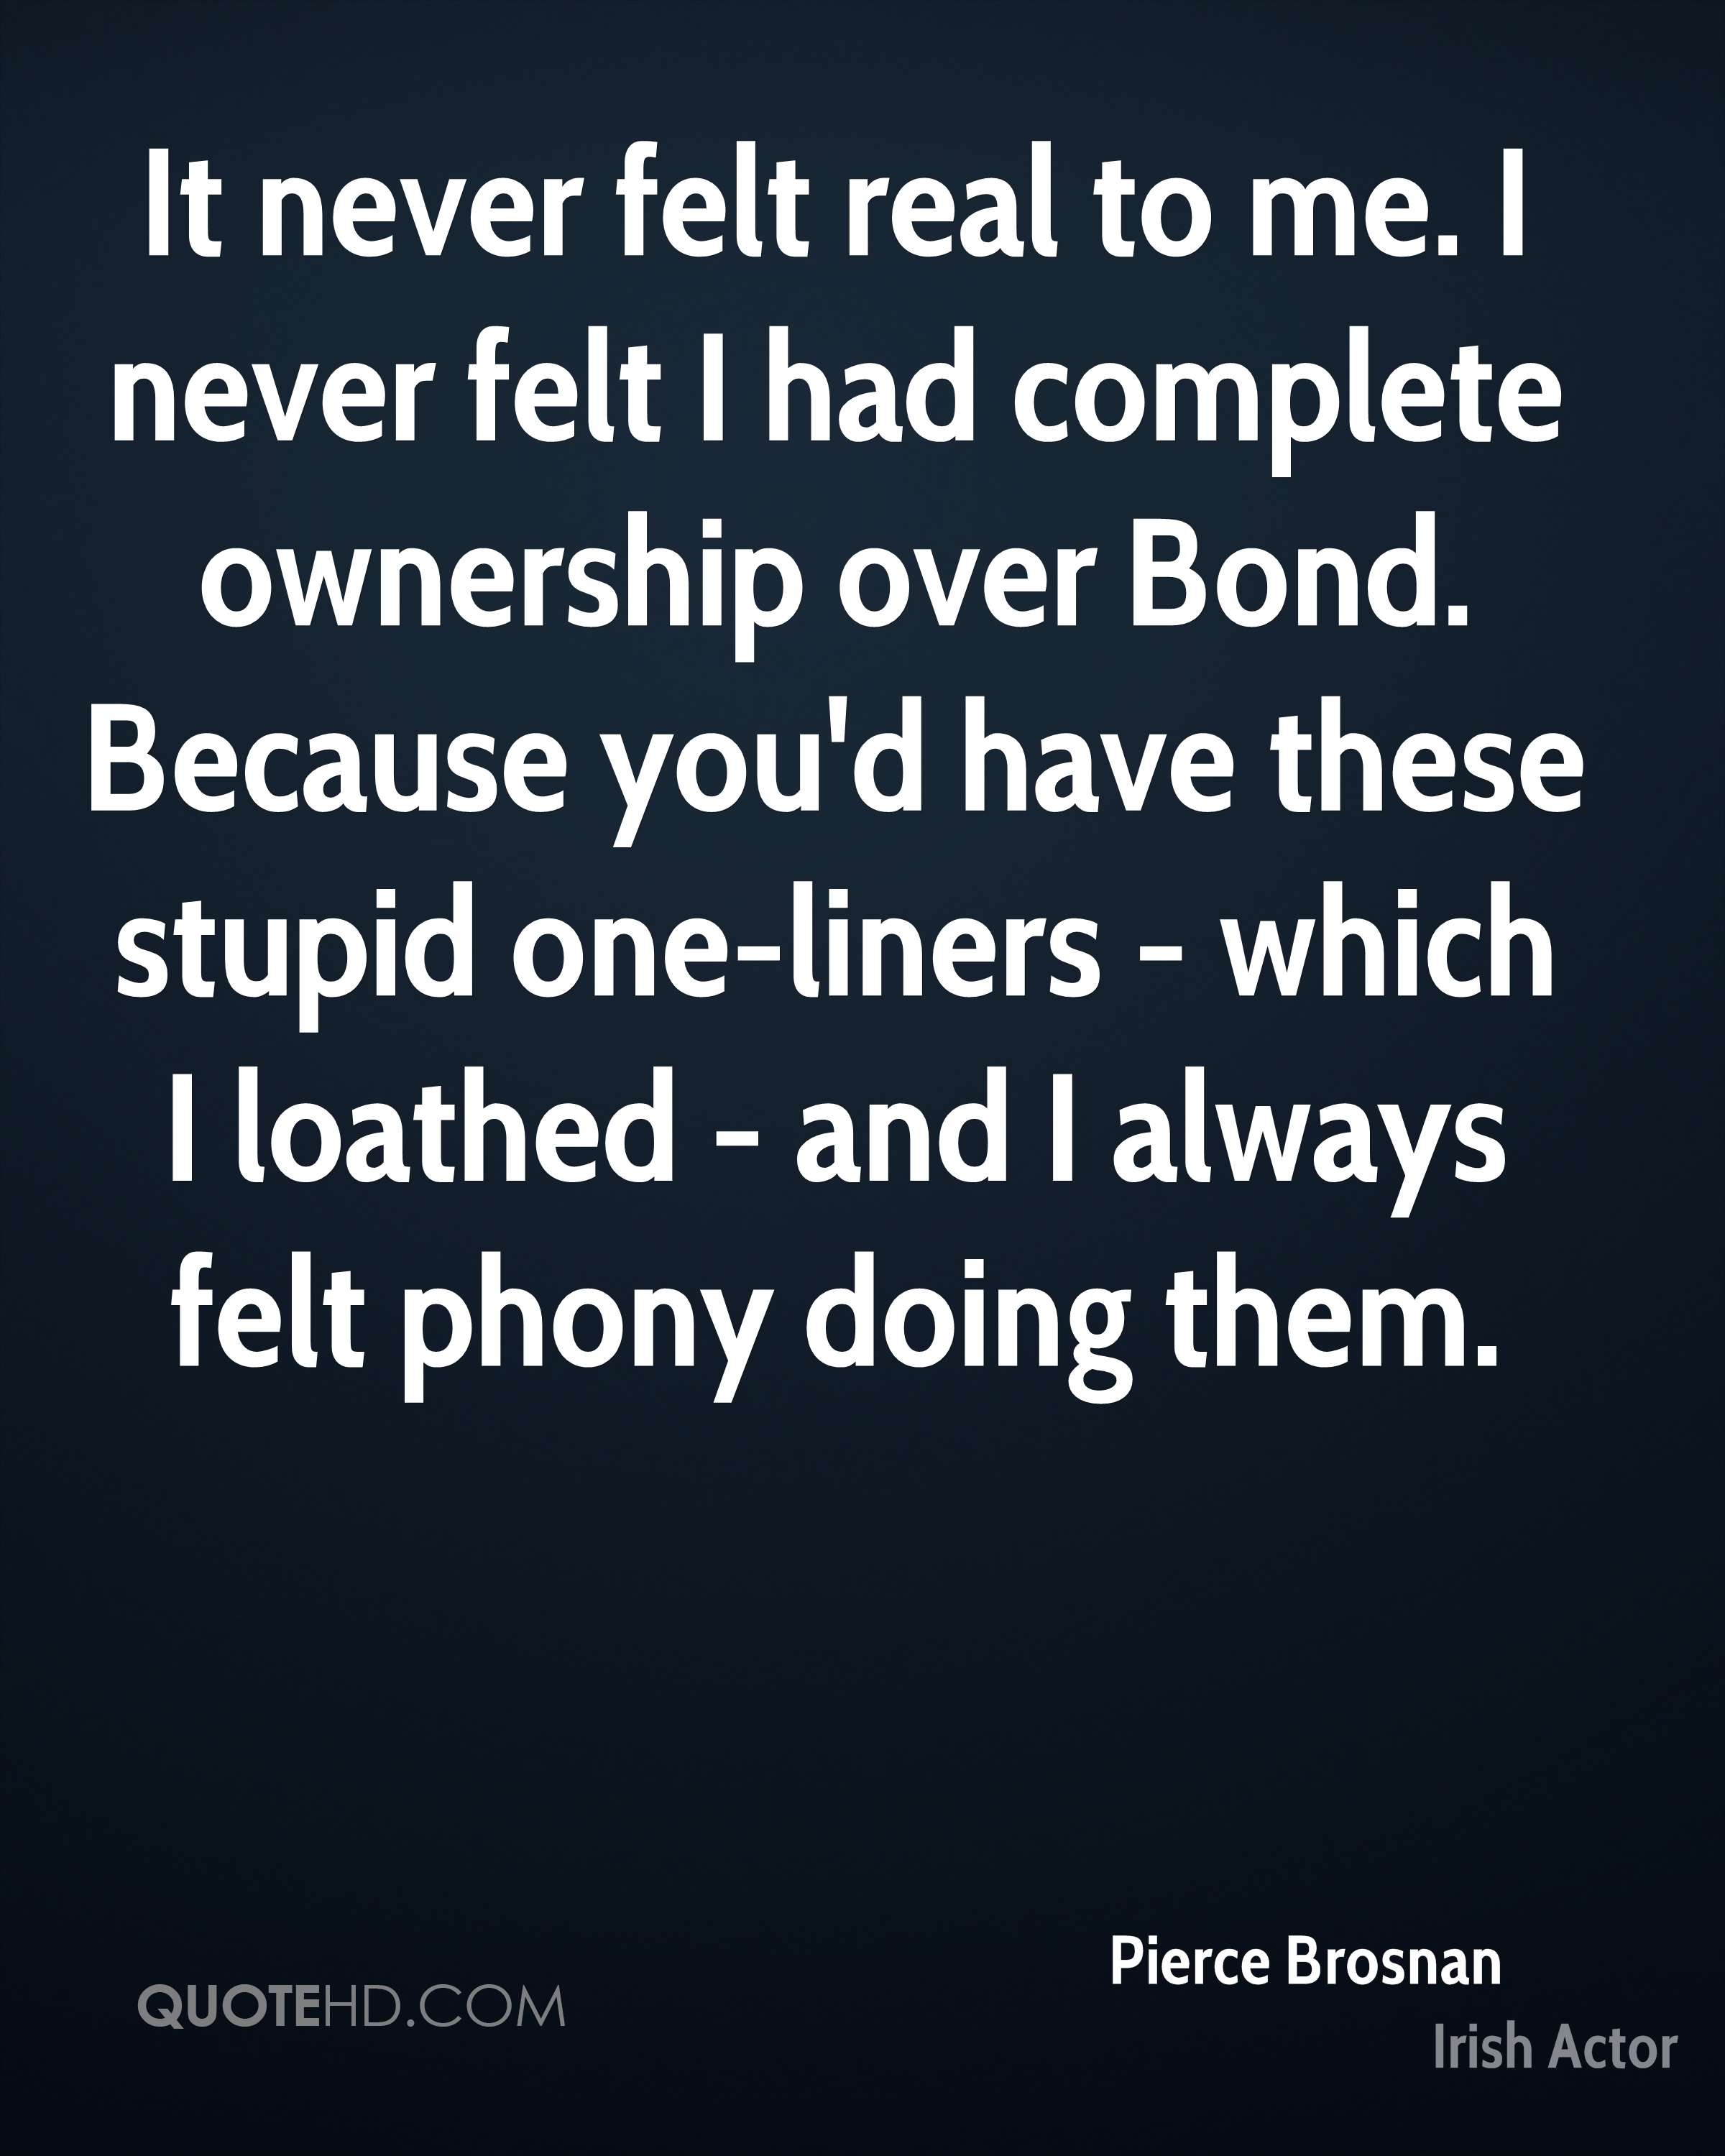 It never felt real to me. I never felt I had complete ownership over Bond. Because you'd have these stupid one-liners - which I loathed - and I always felt phony doing them.